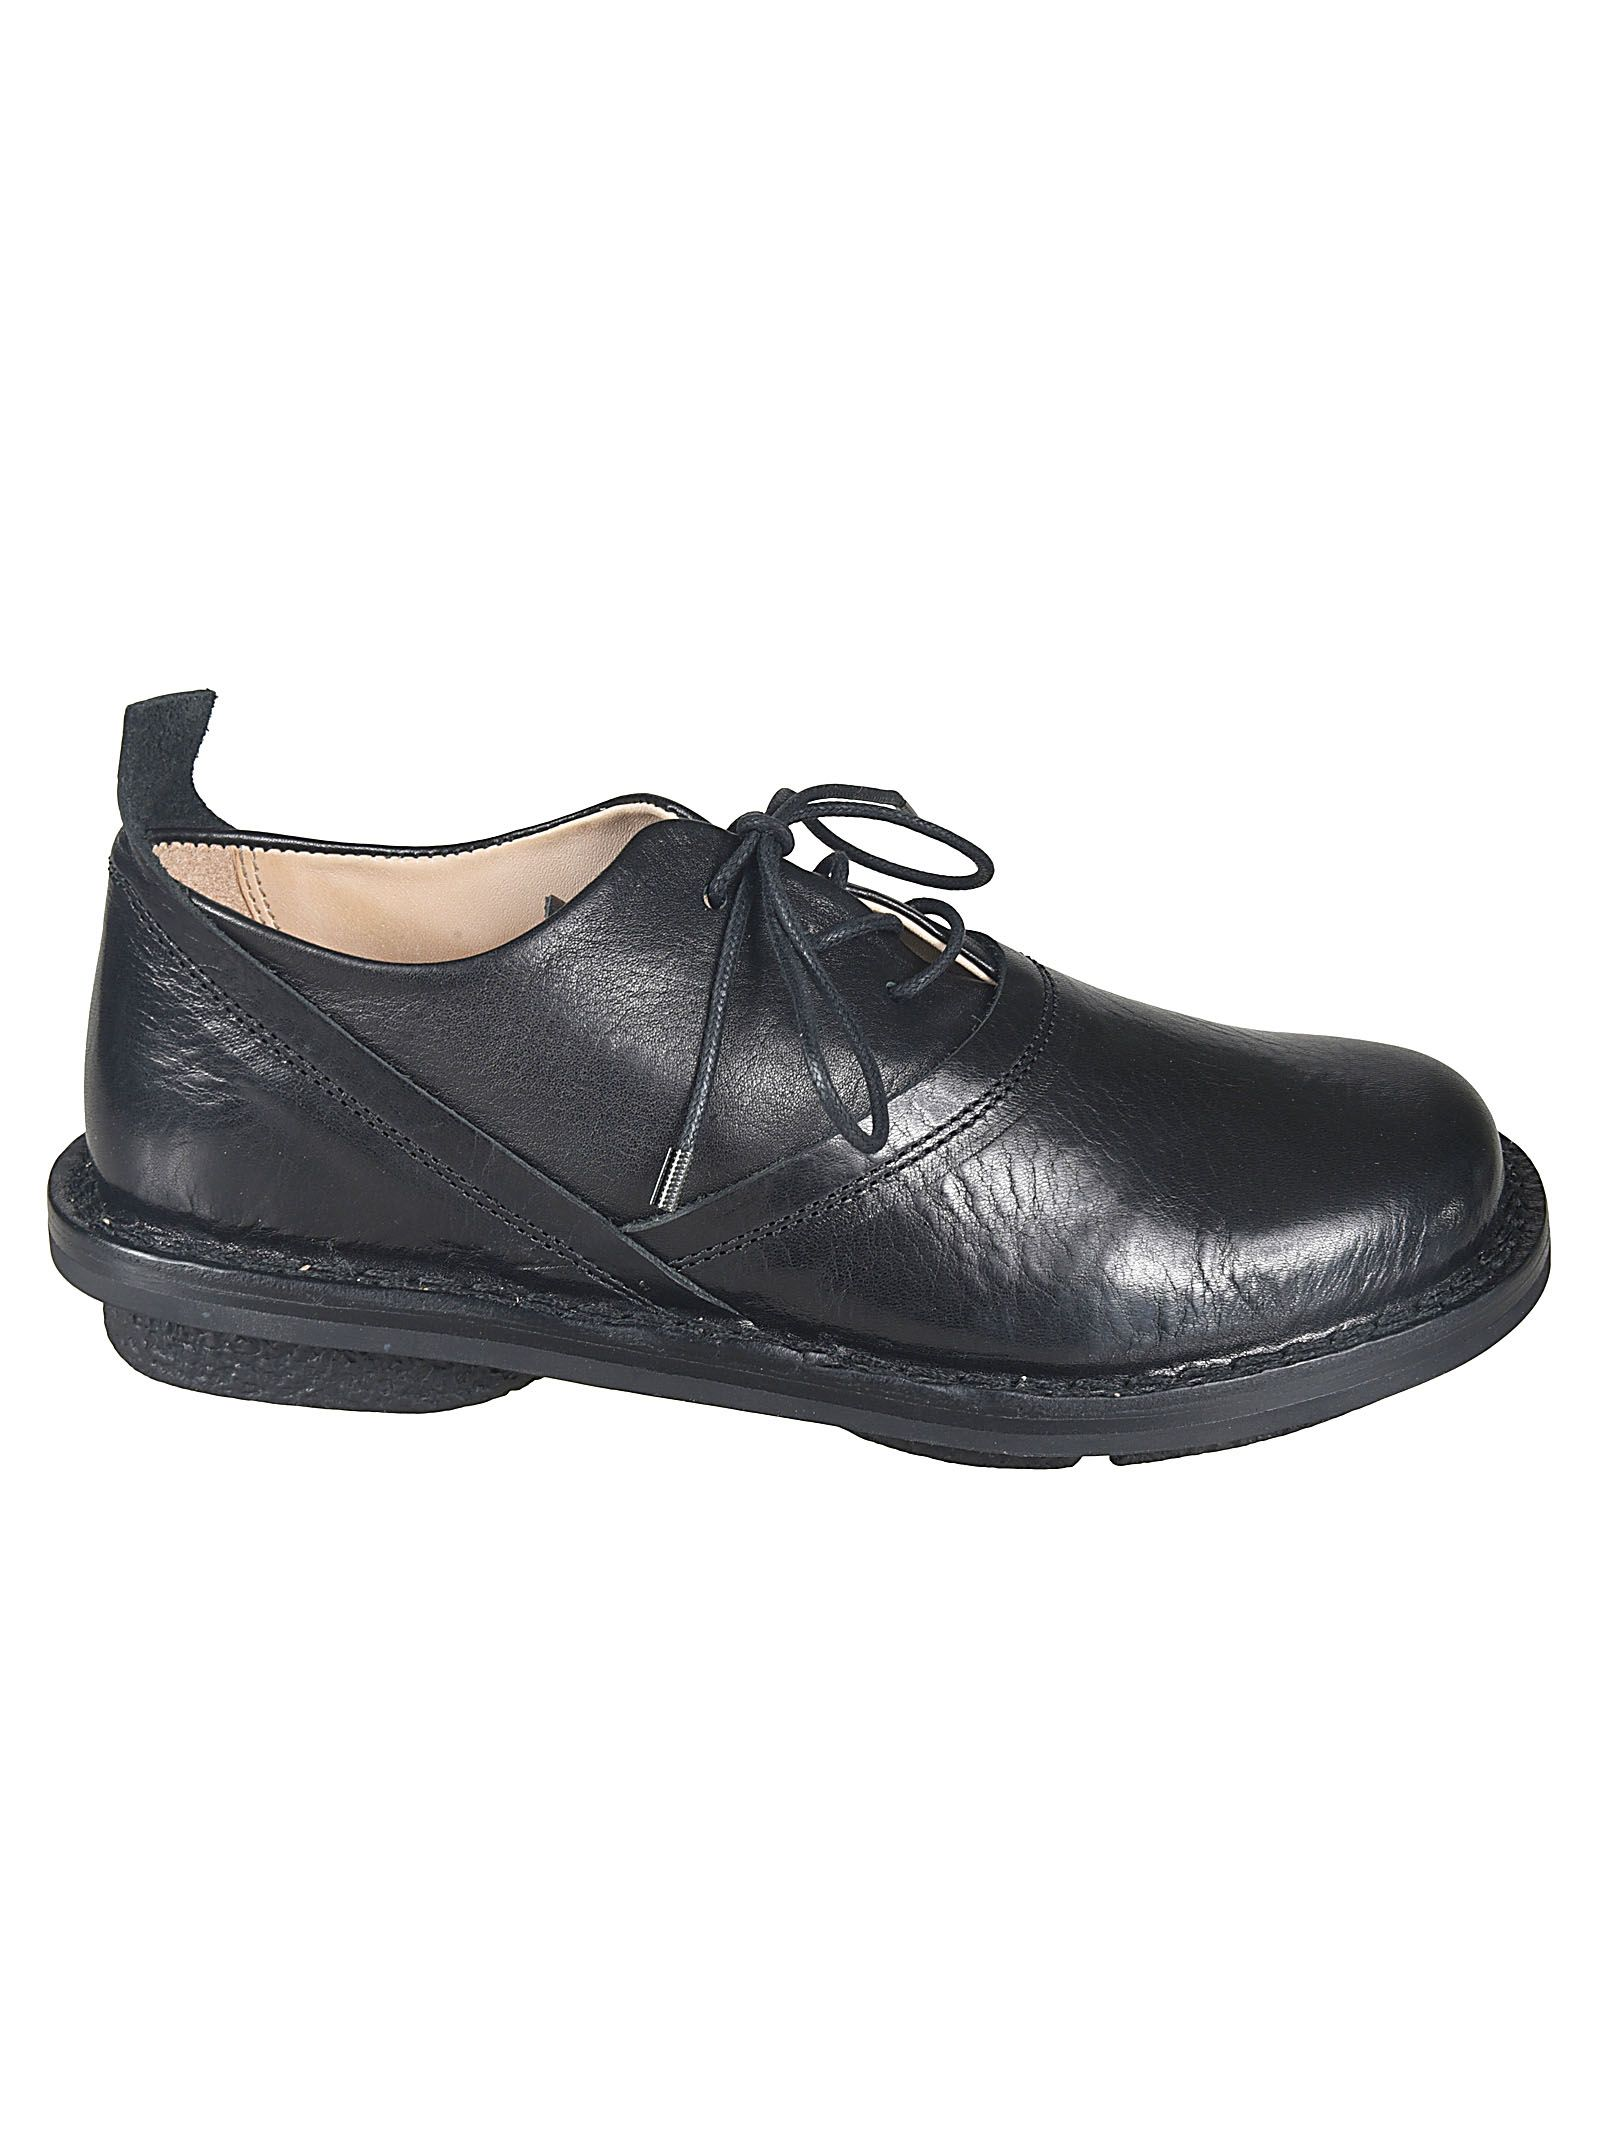 Trippen TRIPPEN WOMEN'S BLACK LEATHER LACE-UP SHOES